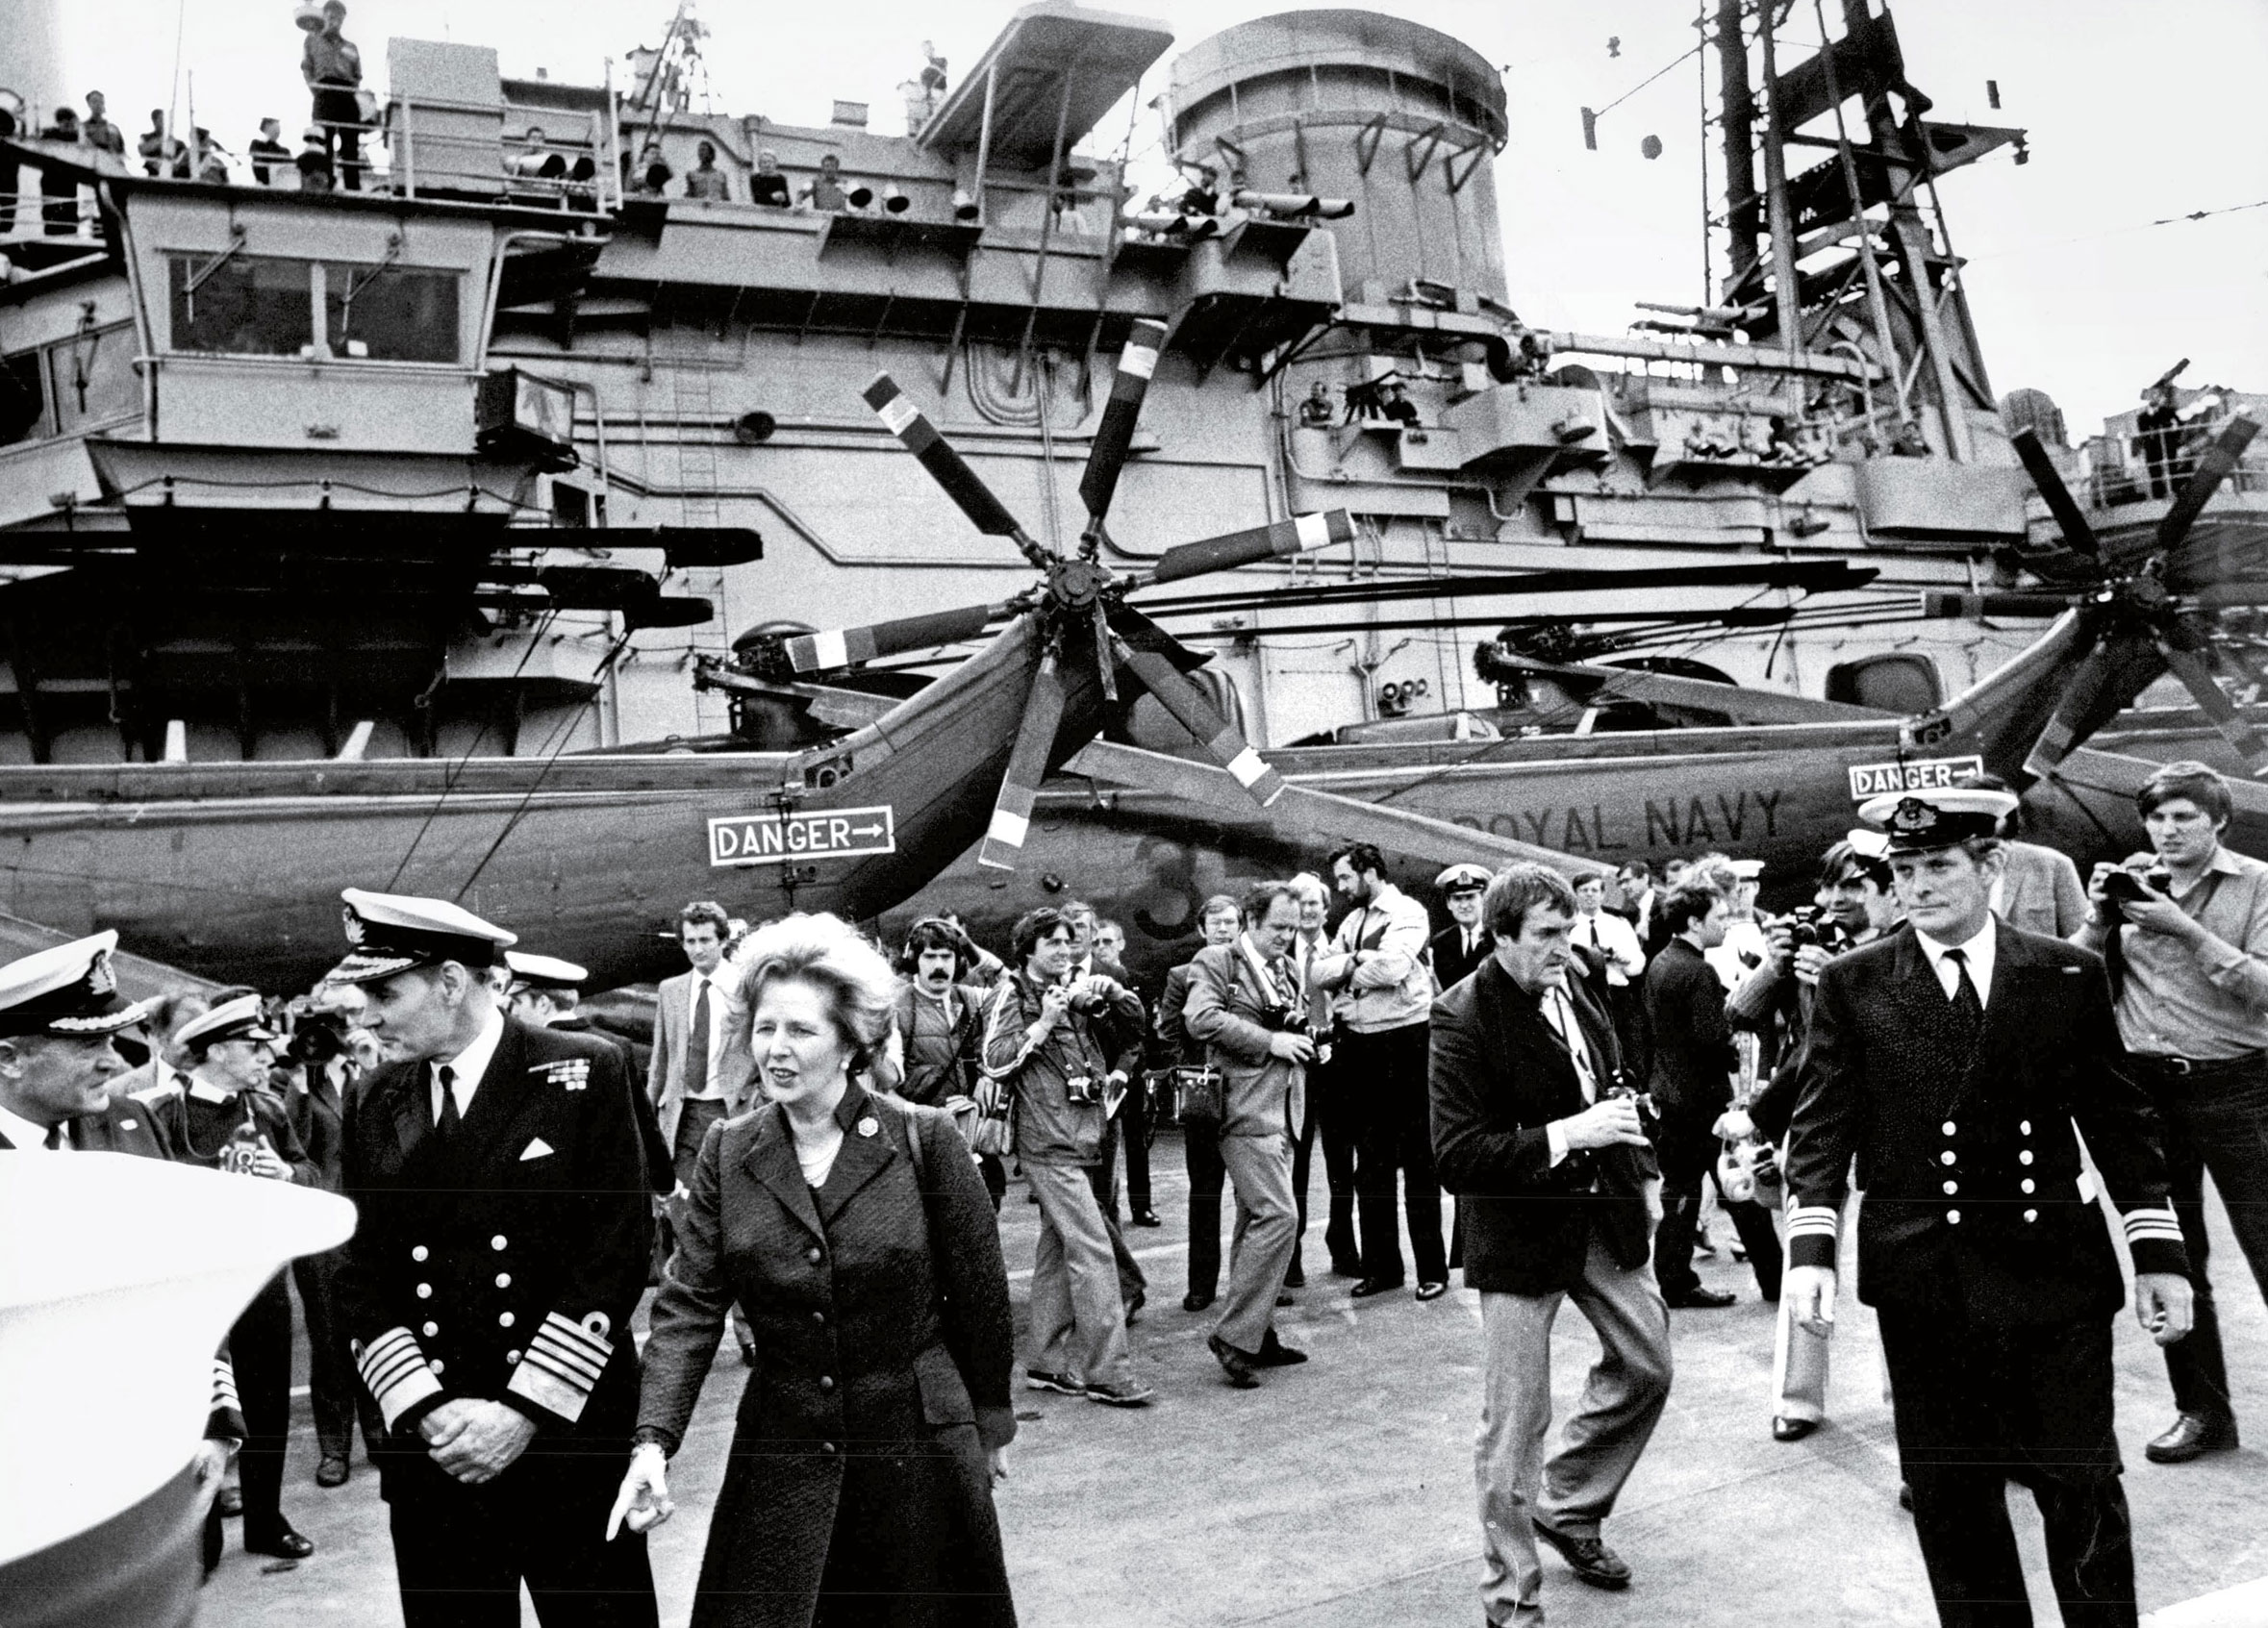 Thatcher aboard H.M.S. Hermes after its return from the Falklands War in 1982.